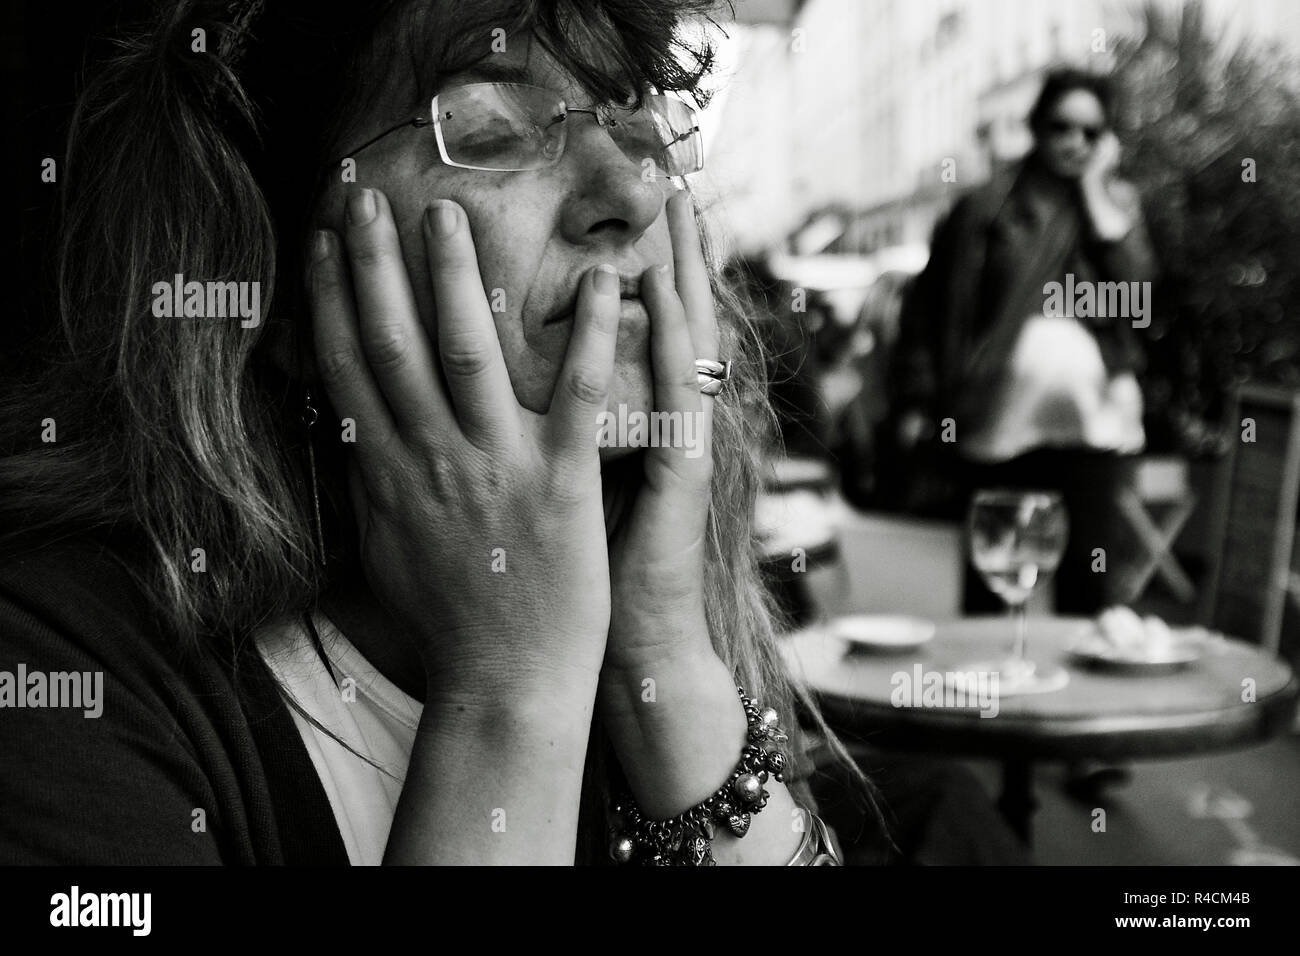 woman, eyes shut, head in hands dreaming, sitting at outside cafe table, - Stock Image